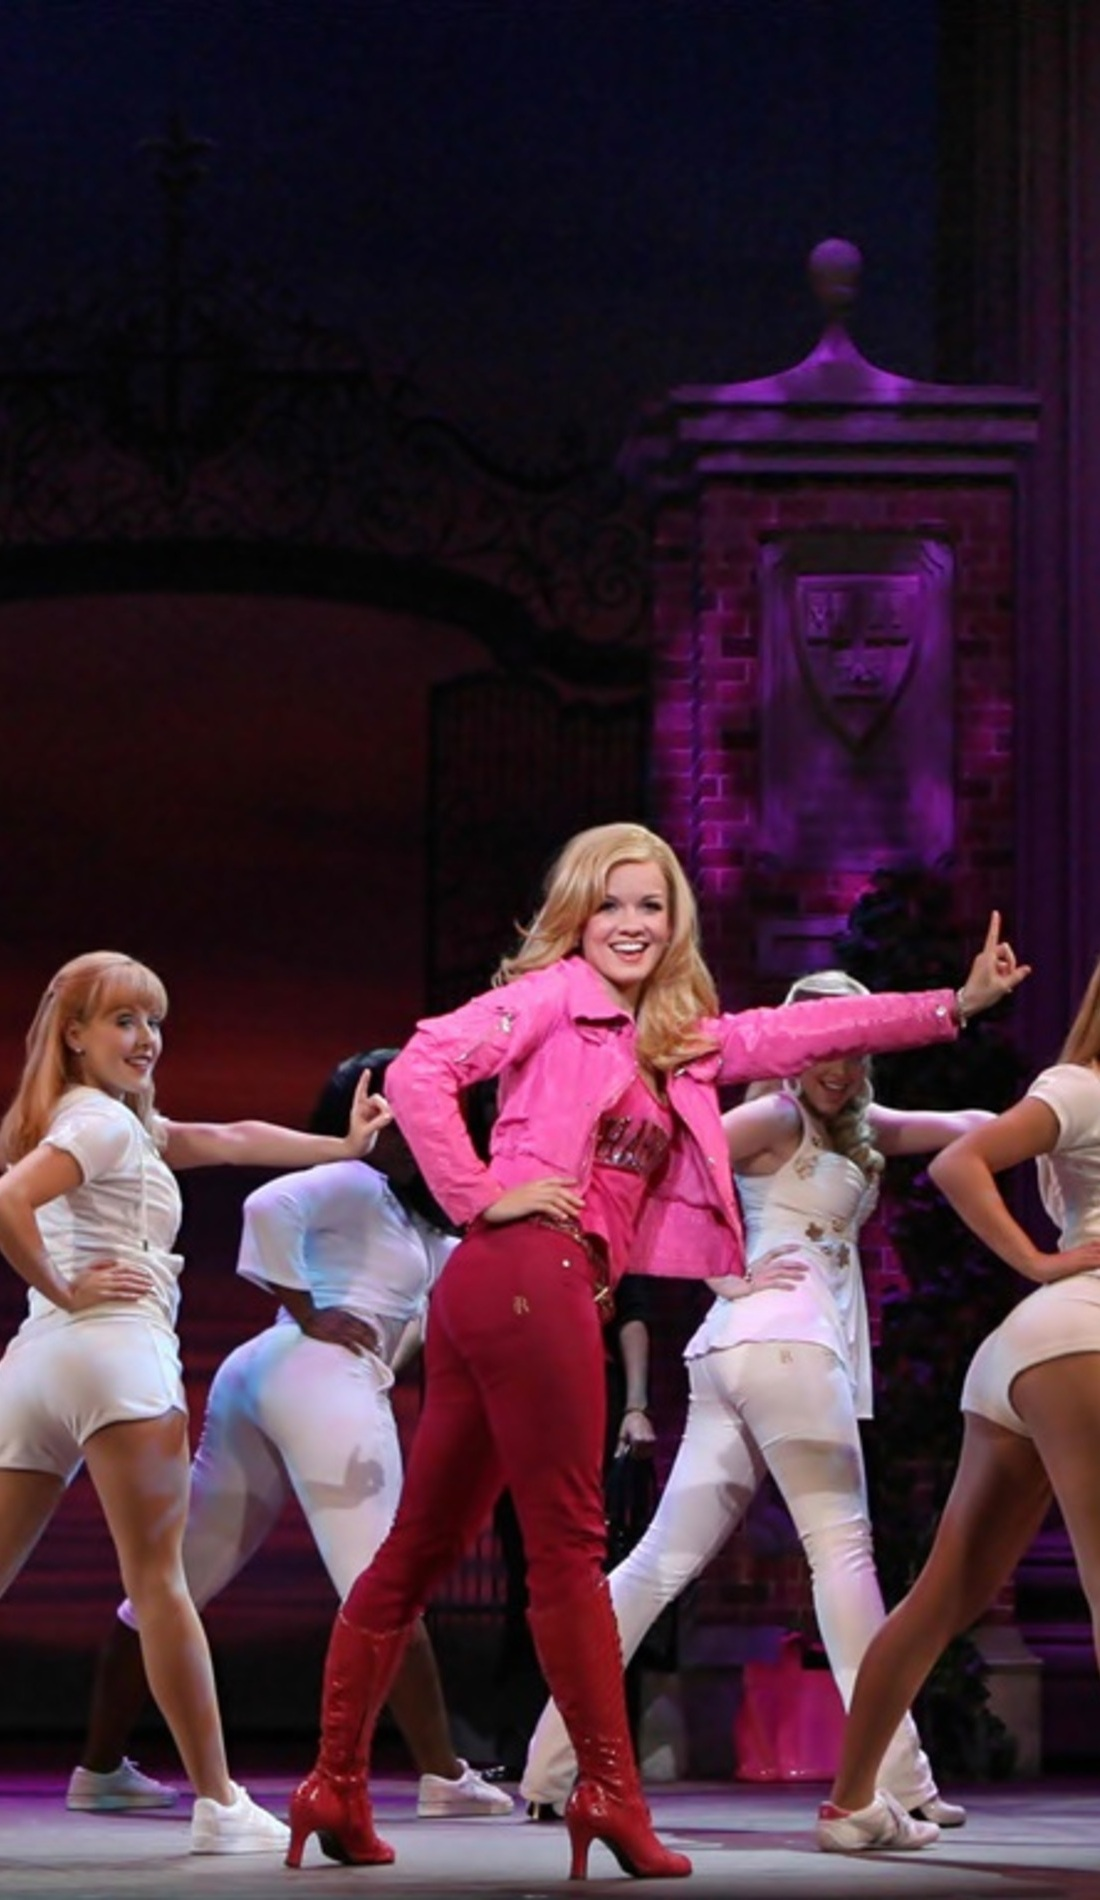 A Legally Blonde live event